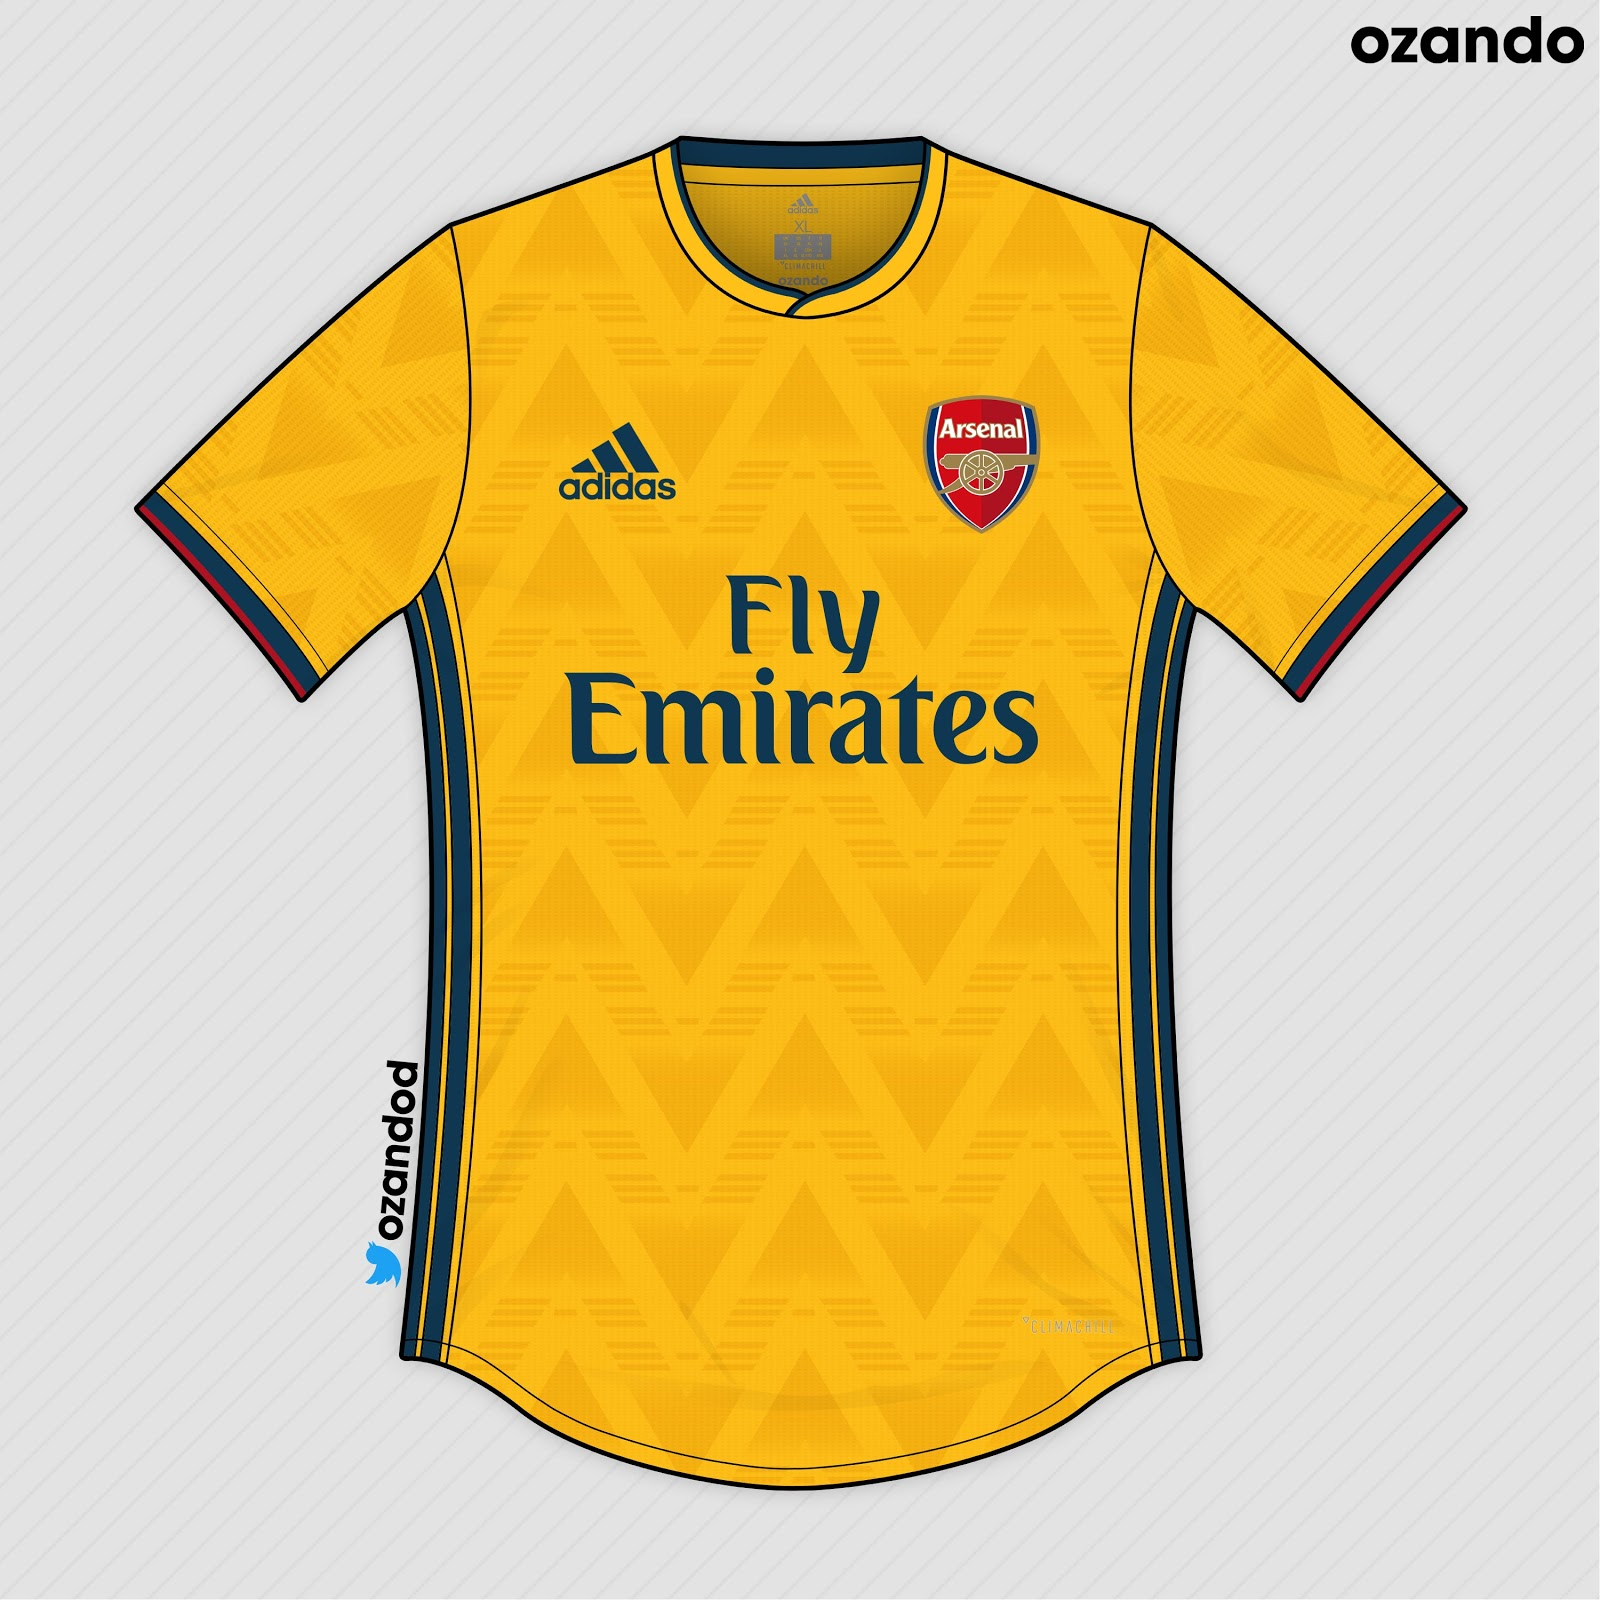 watch a4a1c 3e158 Adidas Arsenal 19-20 Home, Away & Third Concept Kits by ...